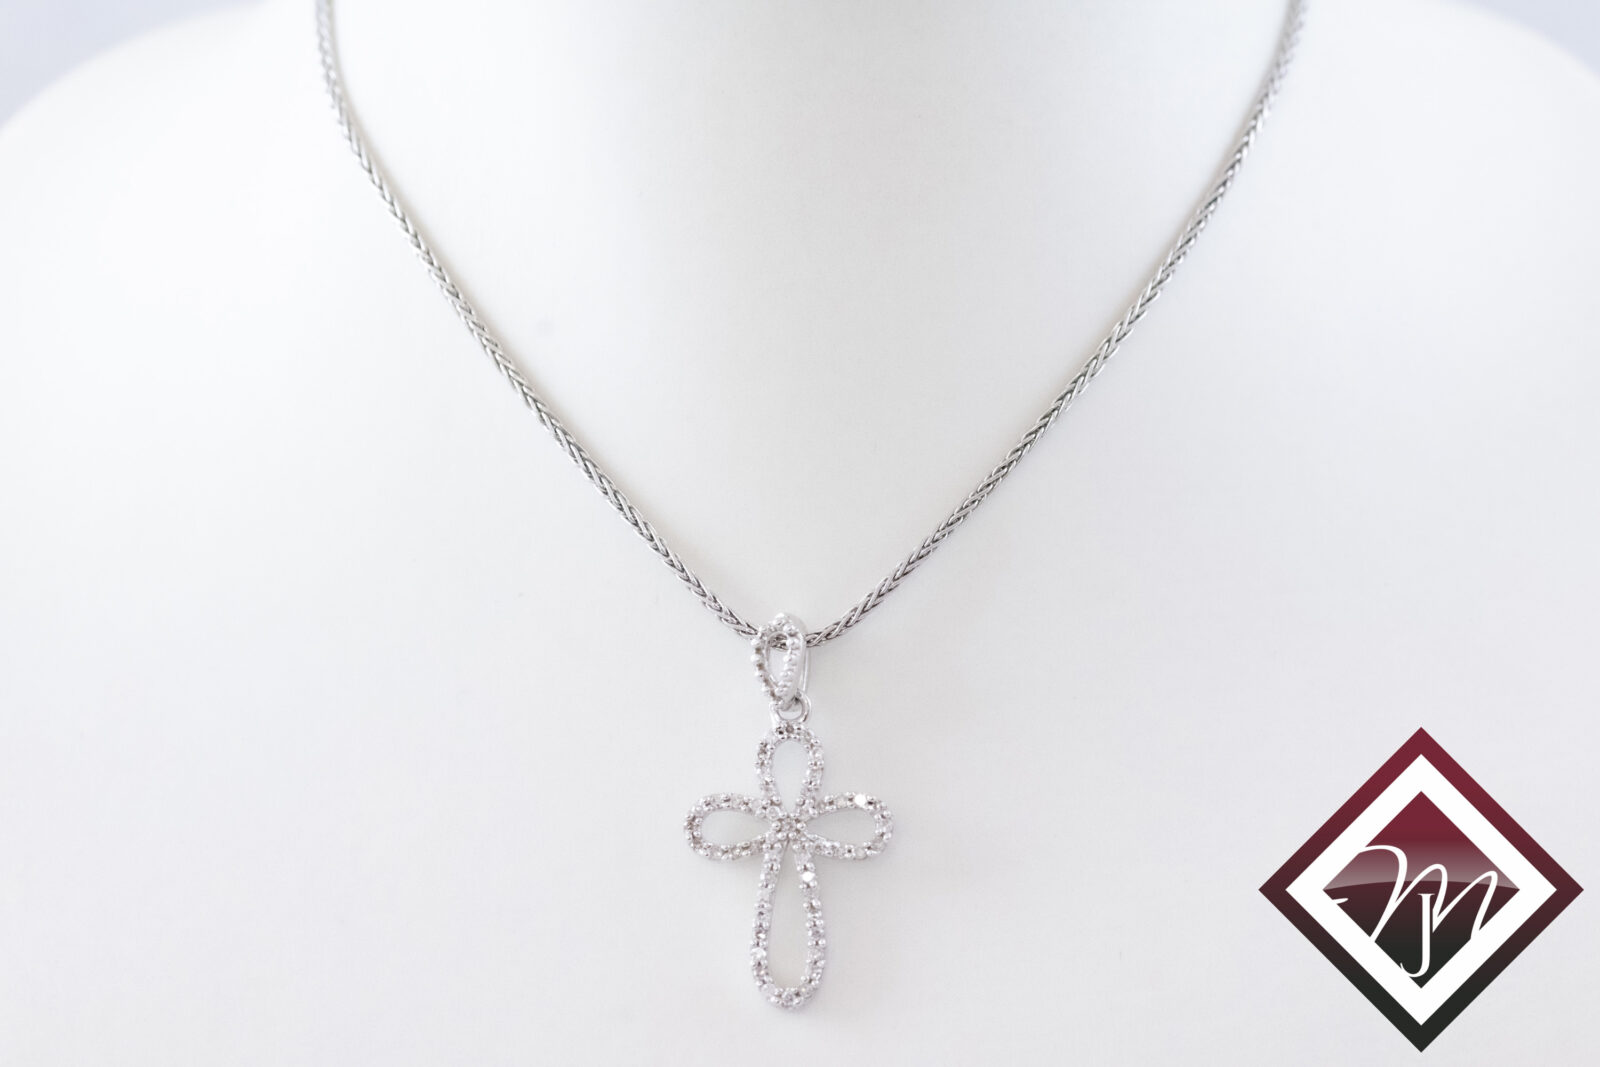 Silver religious necklace